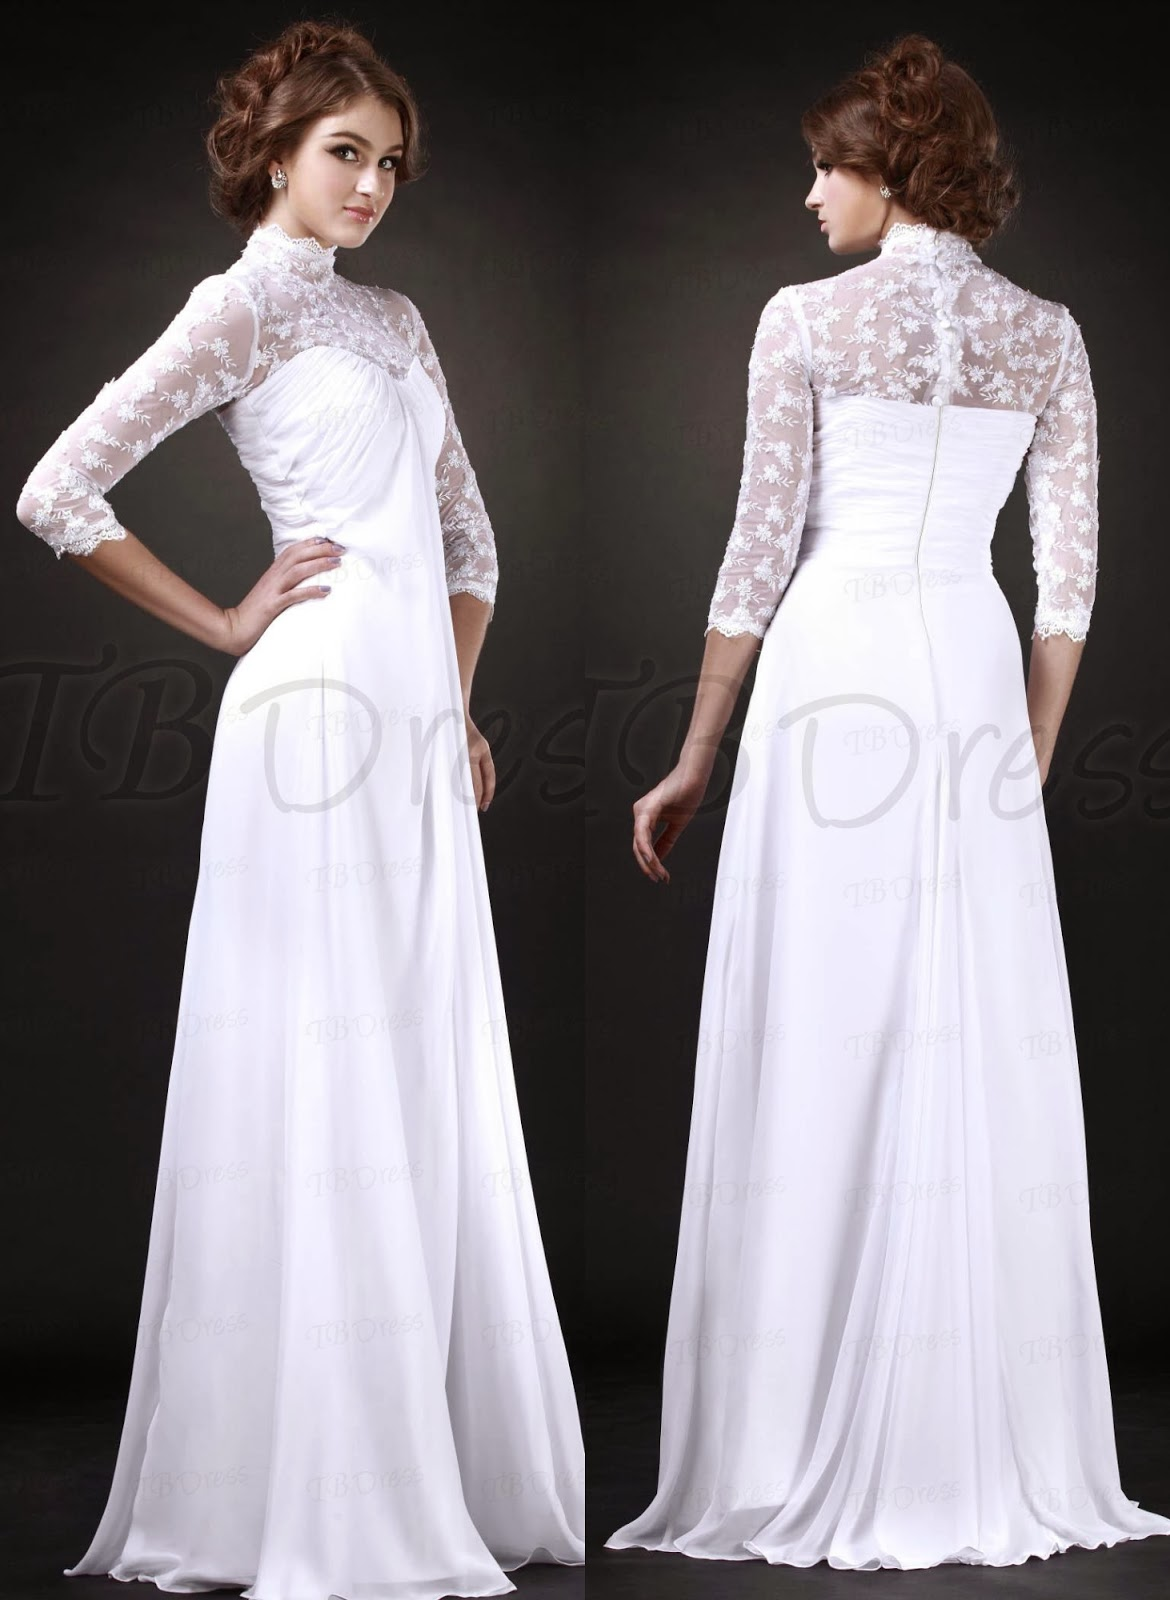 Maternity wedding dresses  LA BOHME